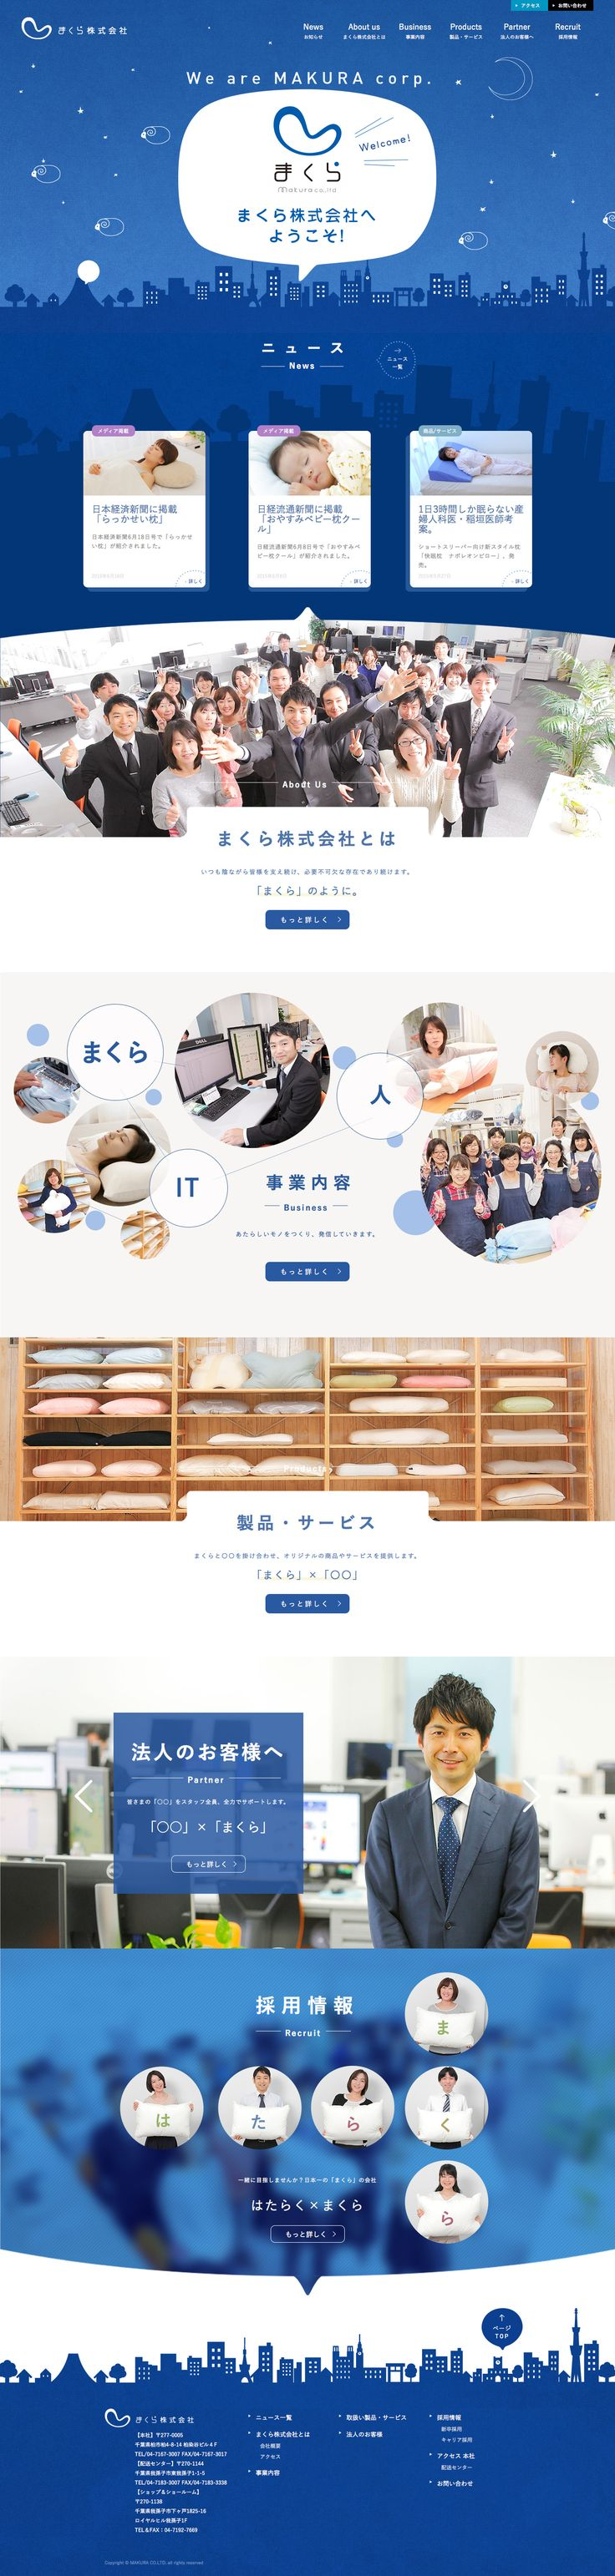 http://www.pillow.co.jp/